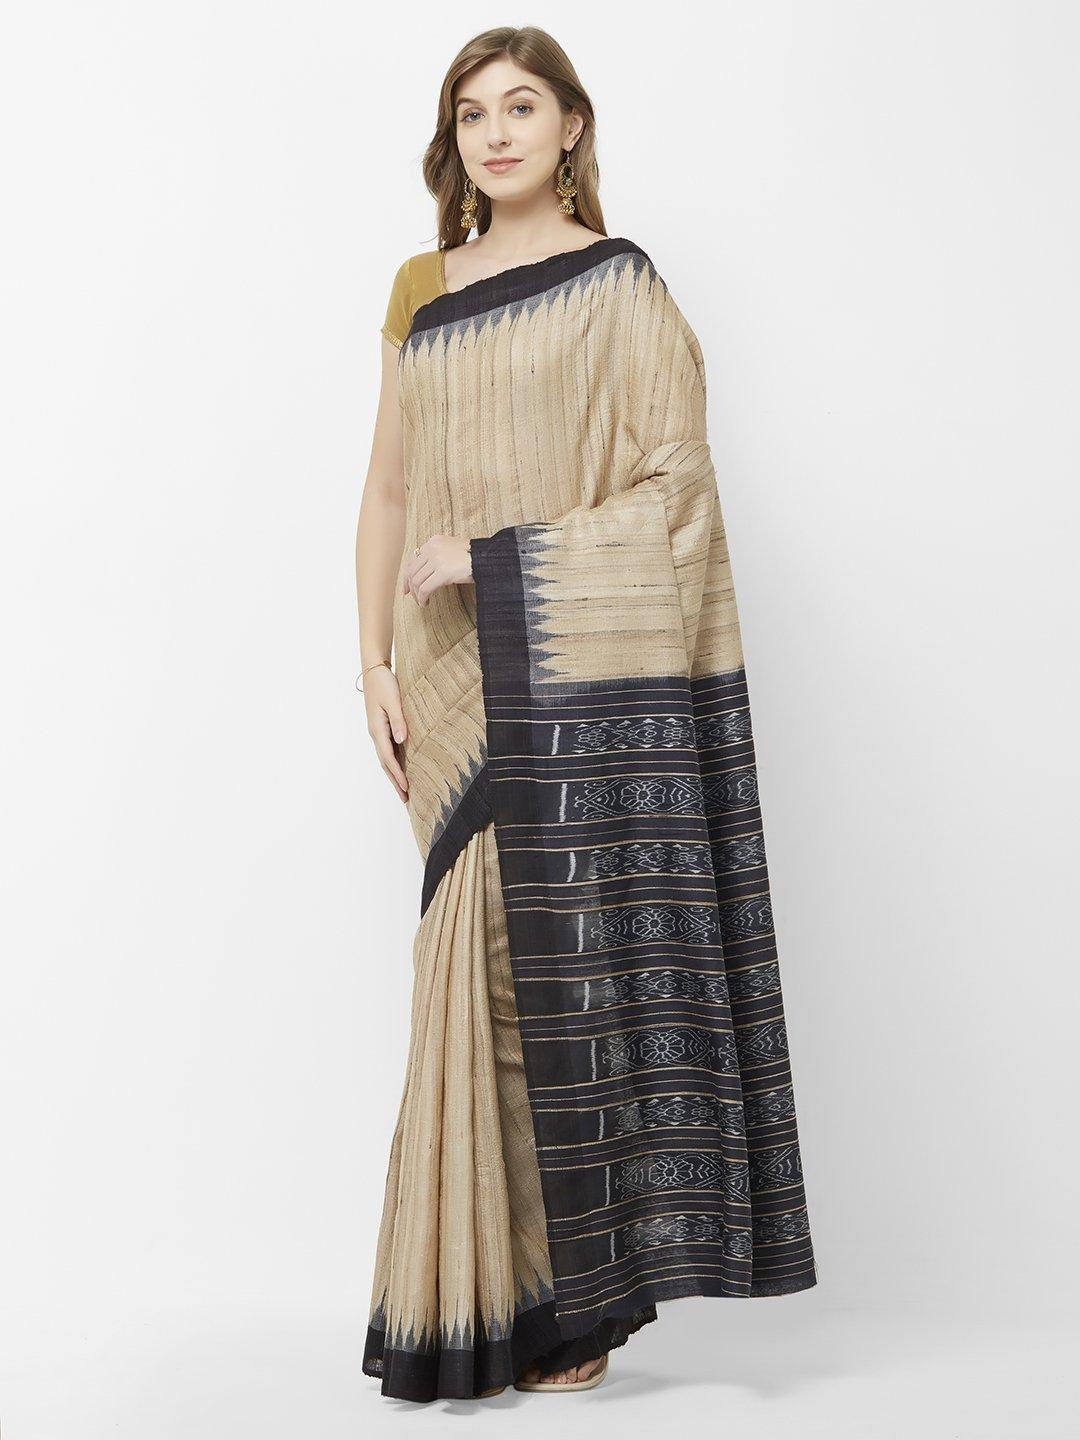 CraftsCollection.in -Beige and Black Tussar Ghicha Silk Sambalpuri Saree